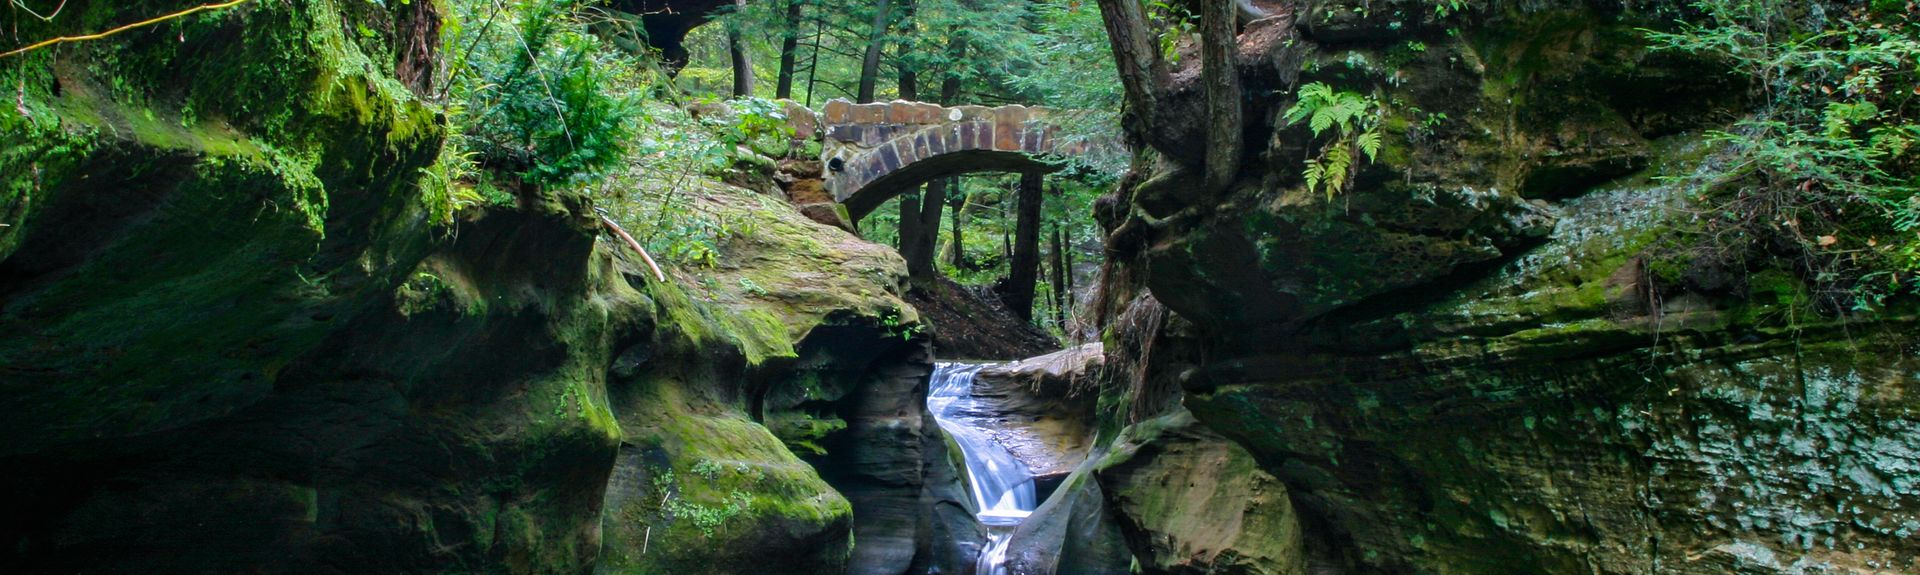 The Hocking Hills, OH, USA